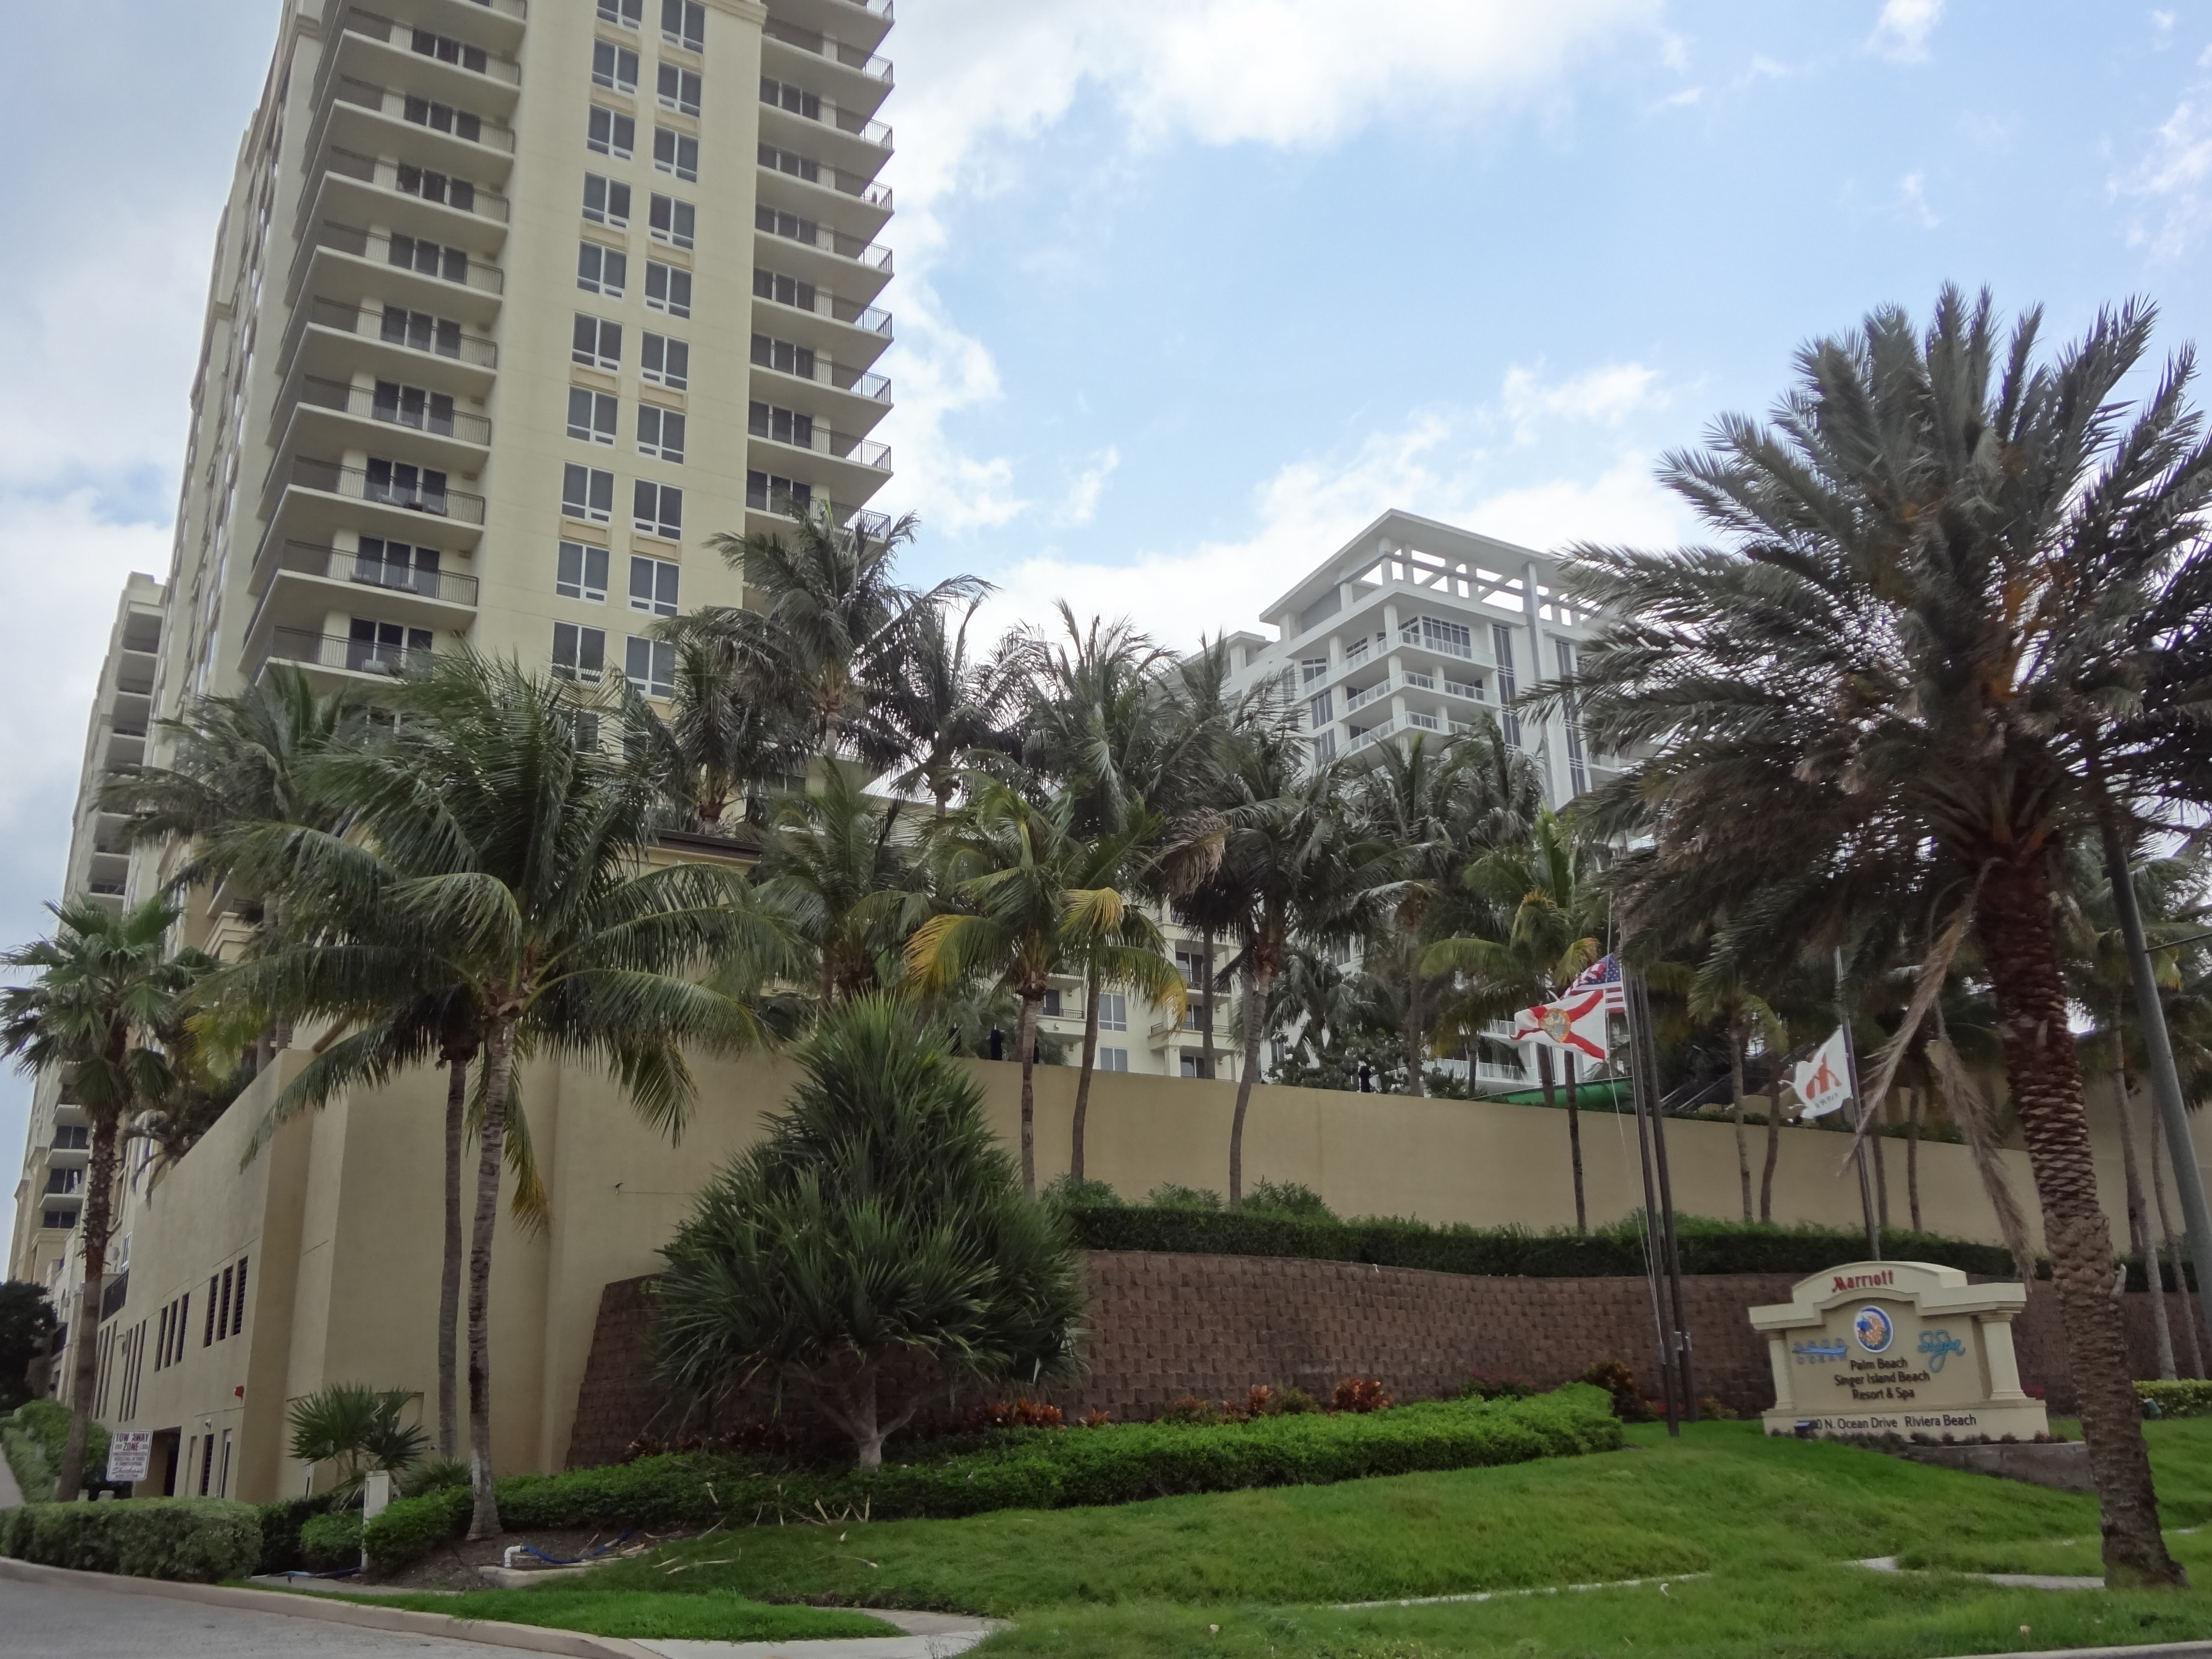 Marriot Resort at Singer Island - Palm Beach Waterfront Condos